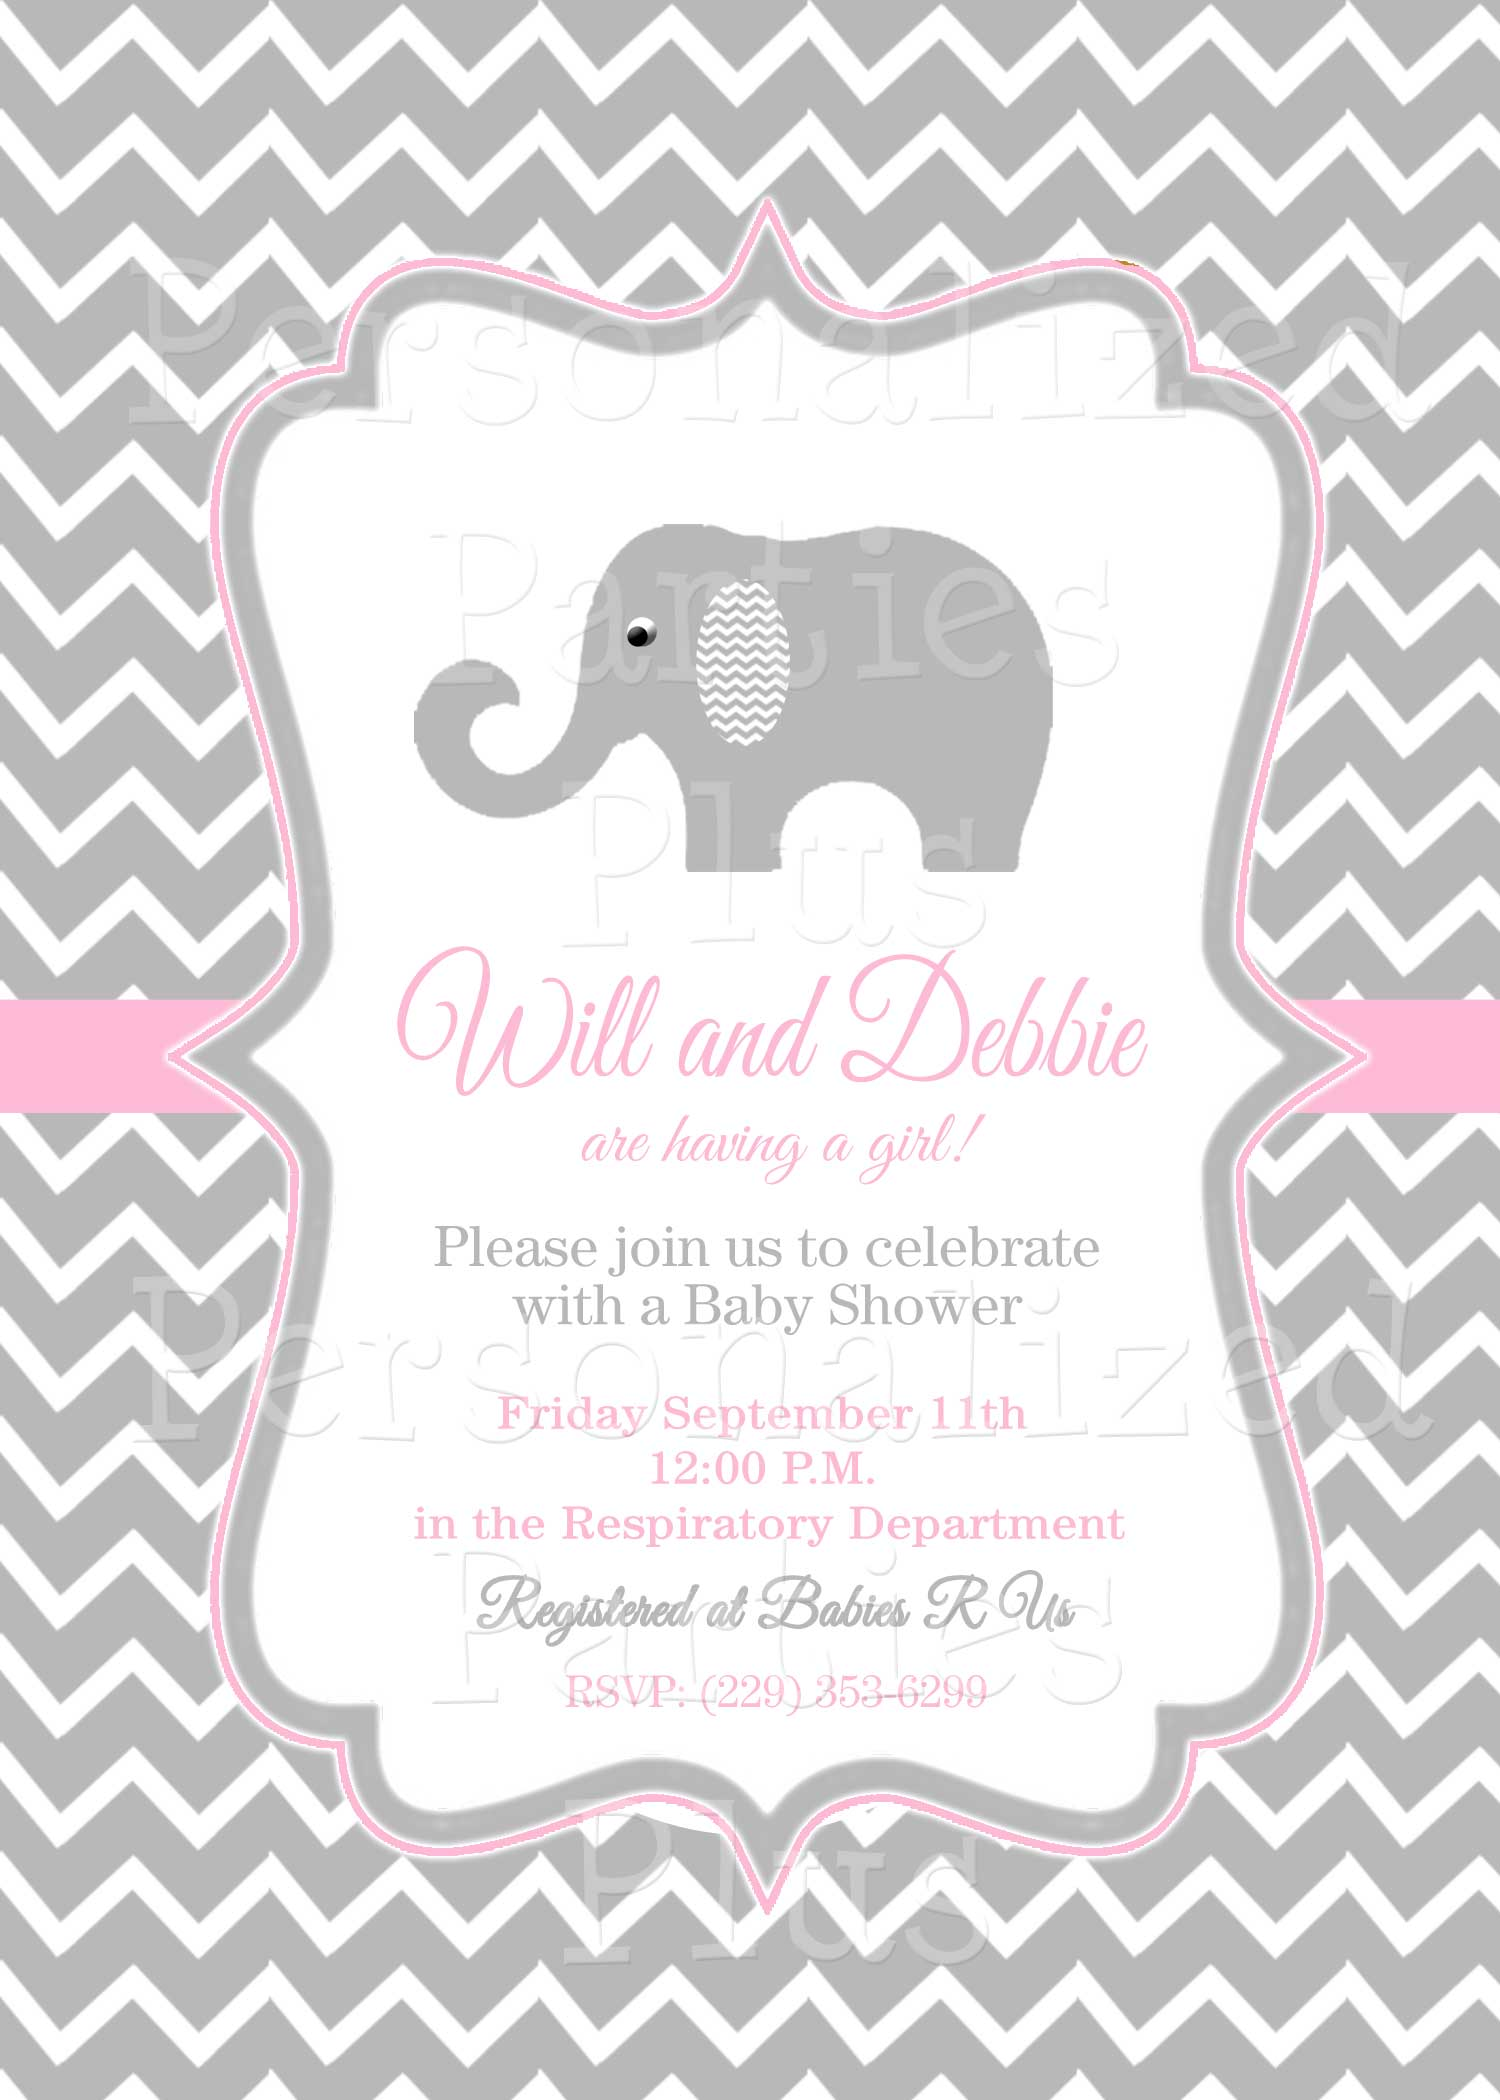 Full Size of Baby Shower:inspirational Elephant Baby Shower Invitations Photo Concepts Baby Shower Party Favors Baby Shower Tea Baby Shower Templates Indian Baby Shower